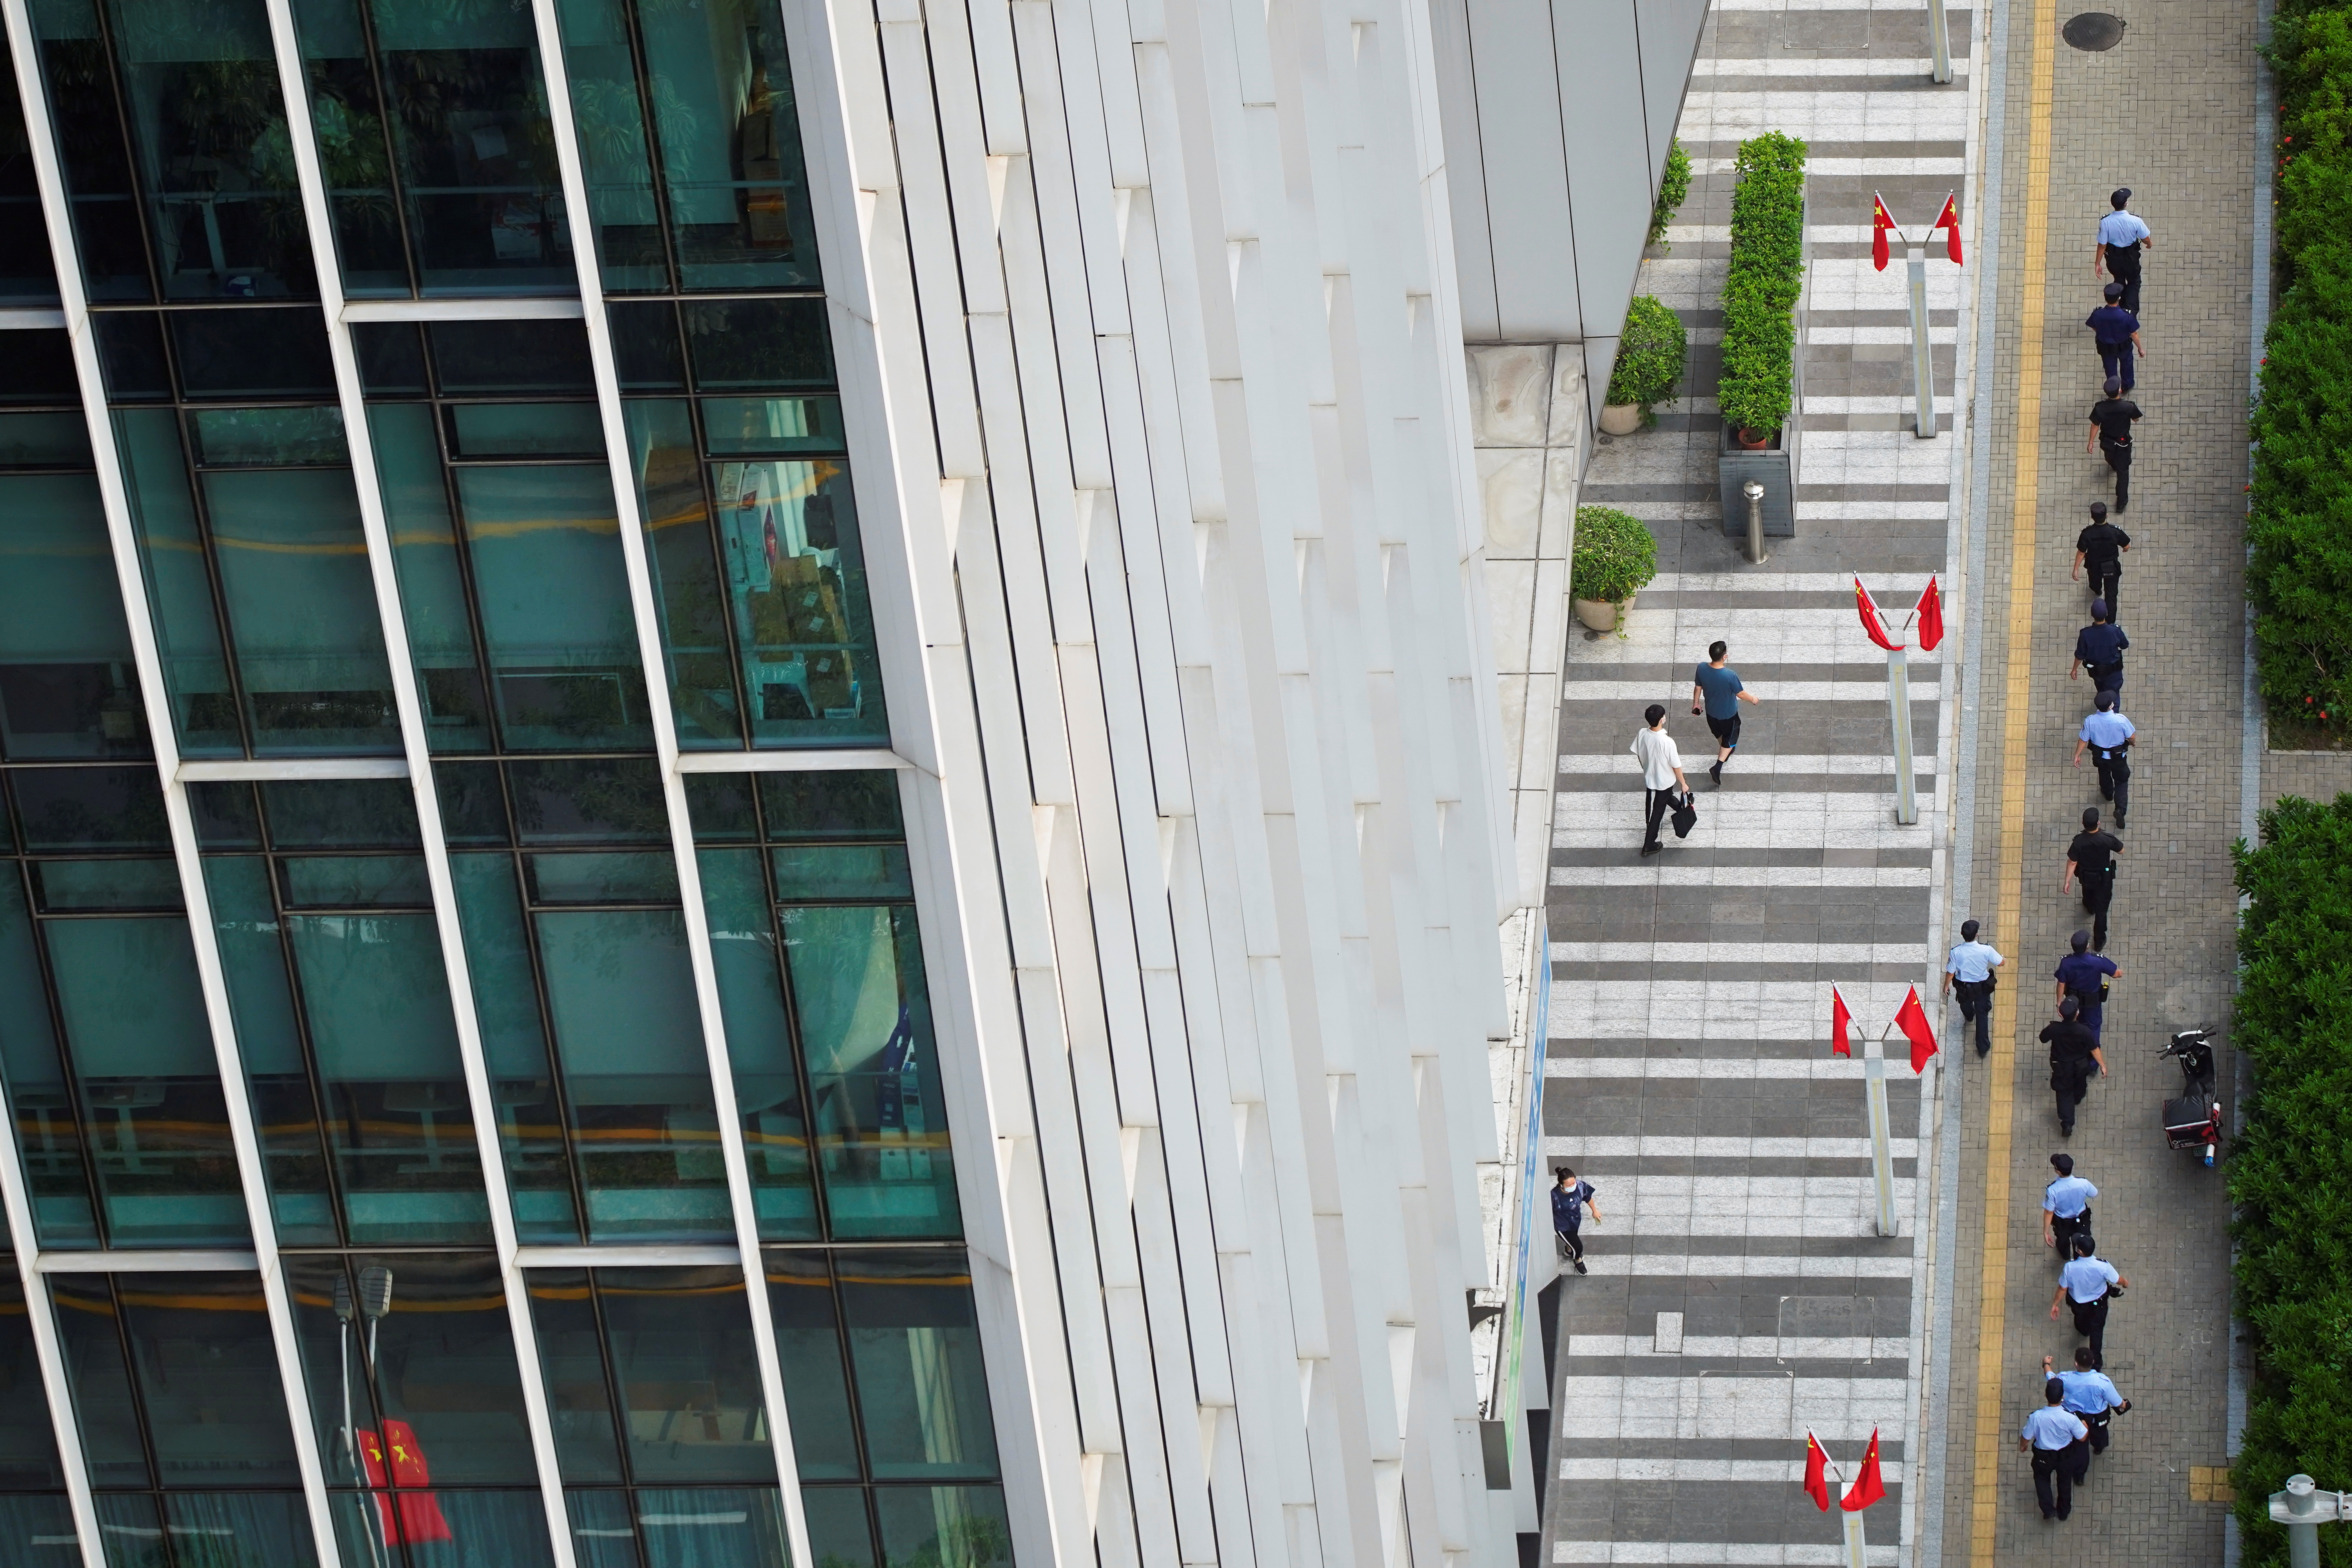 Police officers and security personnel walk outside the headquarters of China Evergrande Group in Shenzhen, Guangdong province, China, September 30, 2021. REUTERS/Aly Song